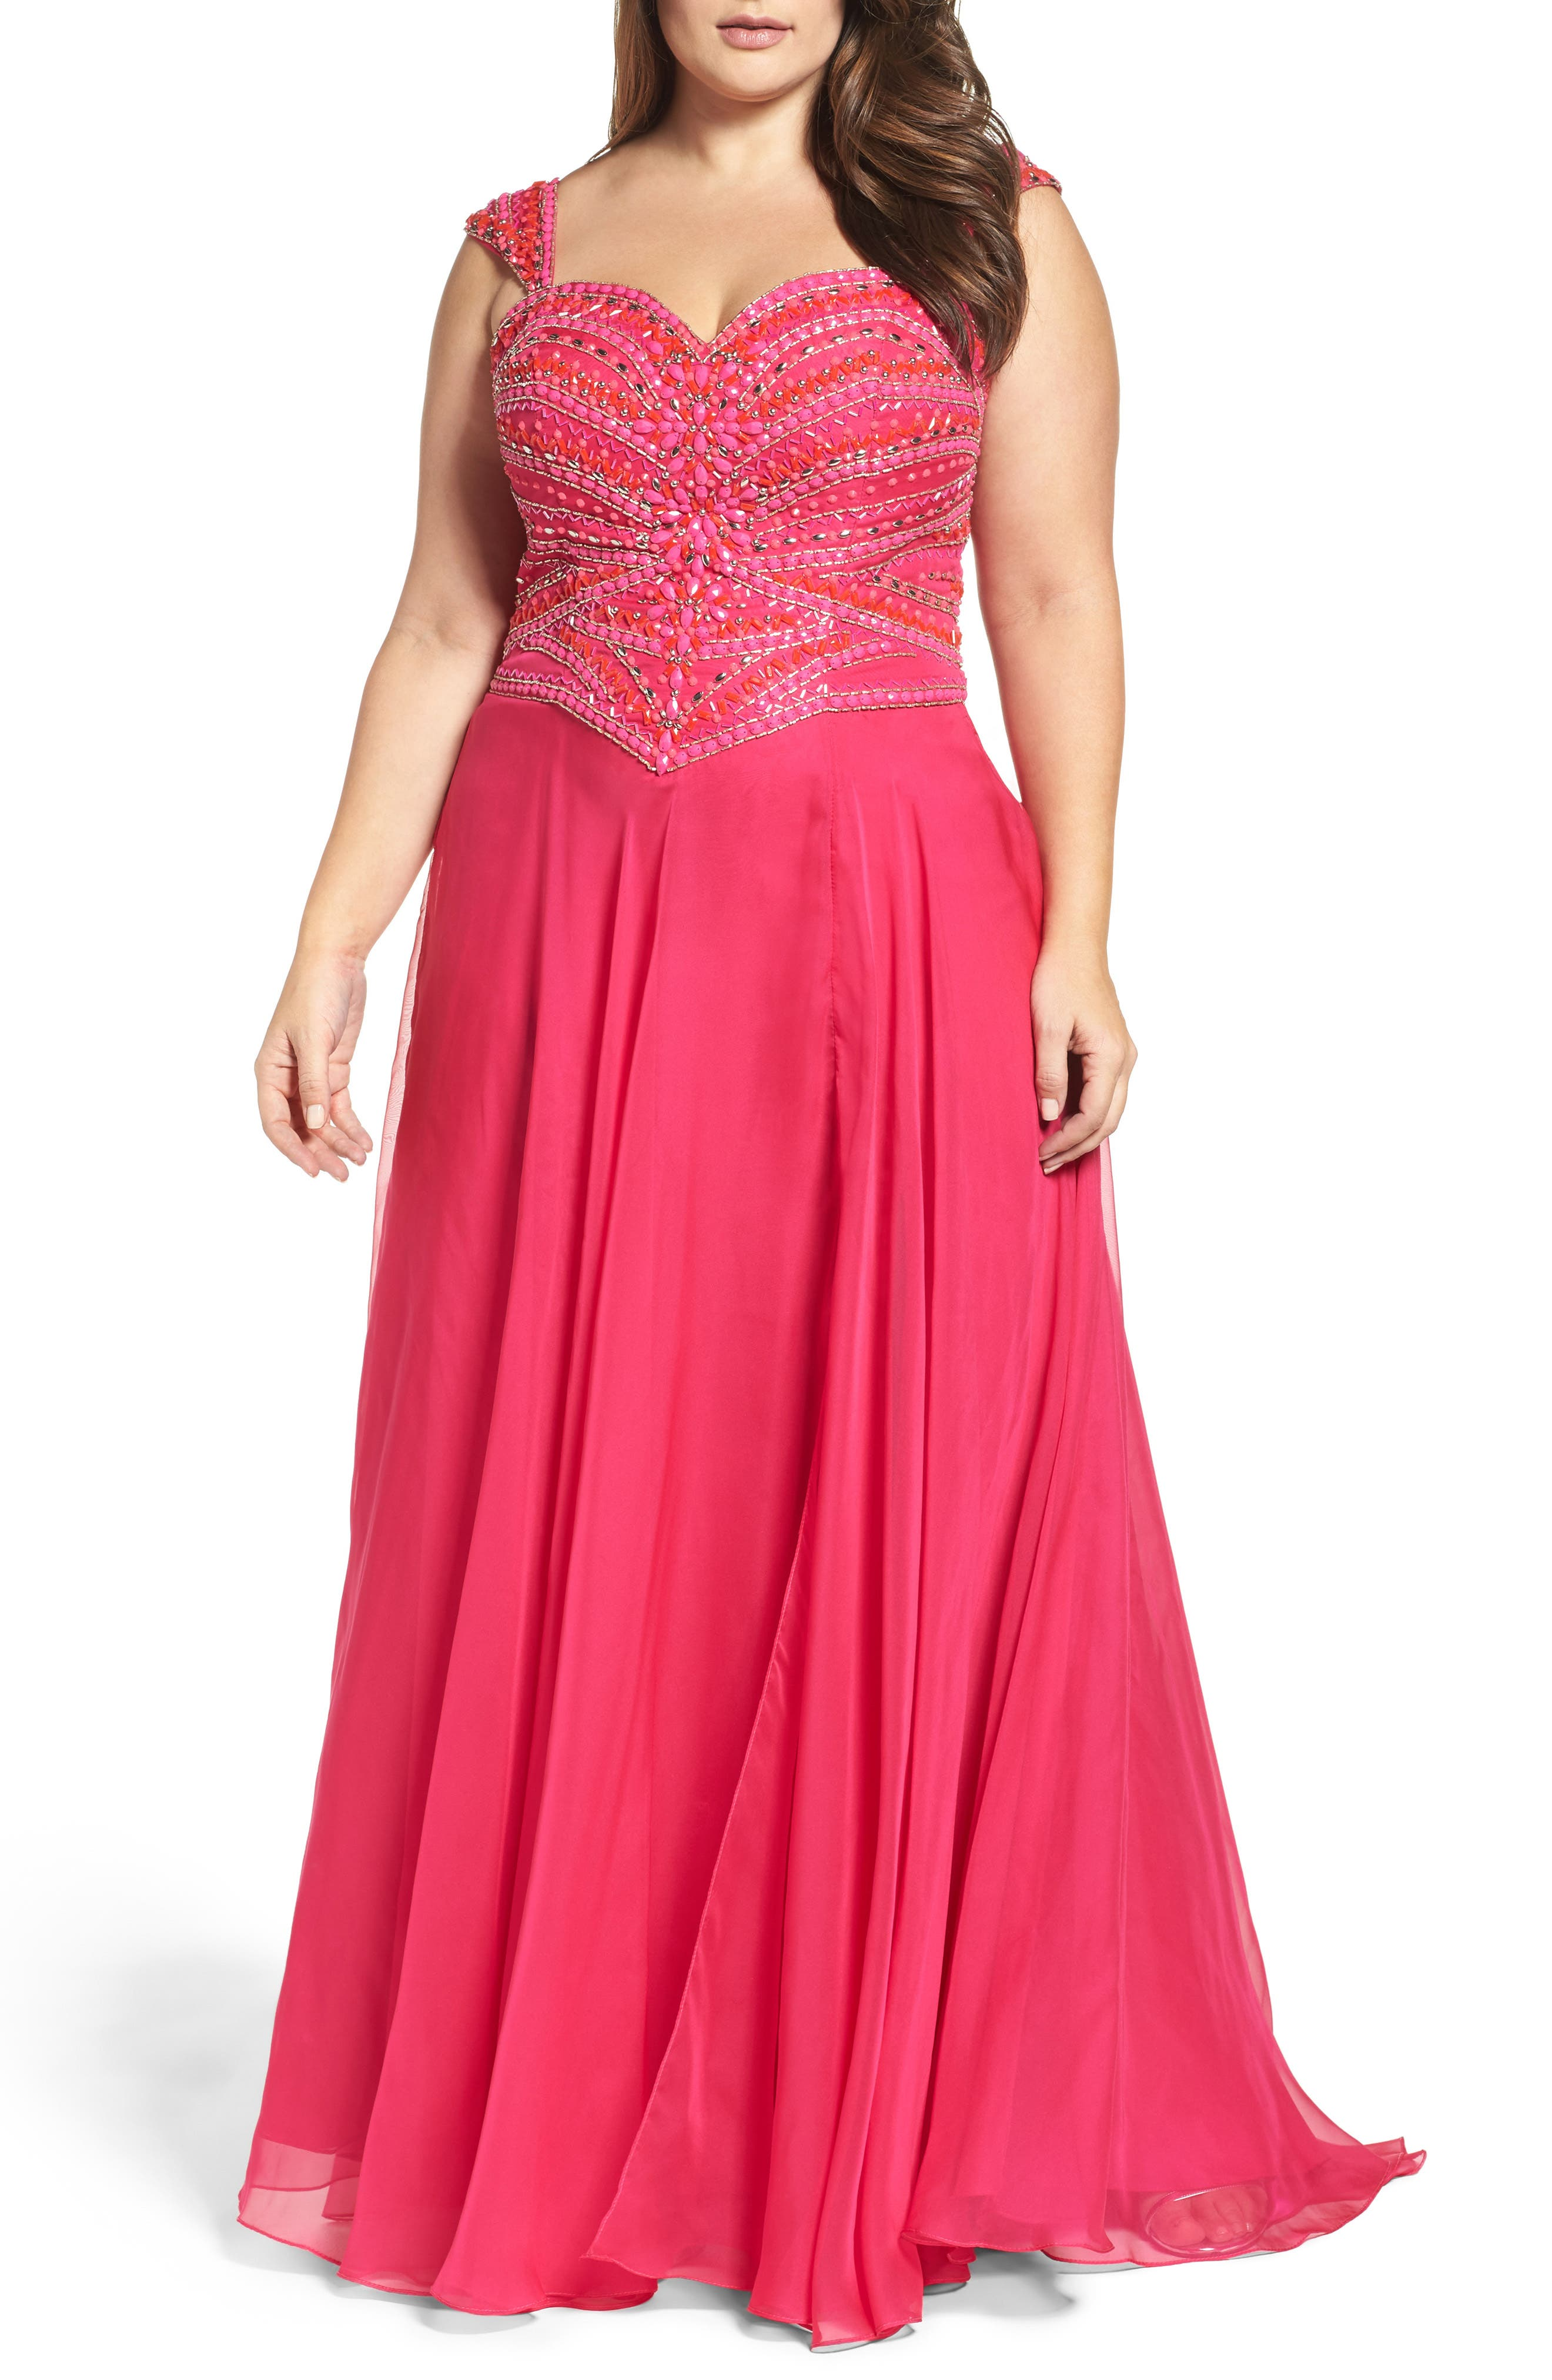 MAC DUGGAL, Embellished Gown, Main thumbnail 1, color, LIPSTICK